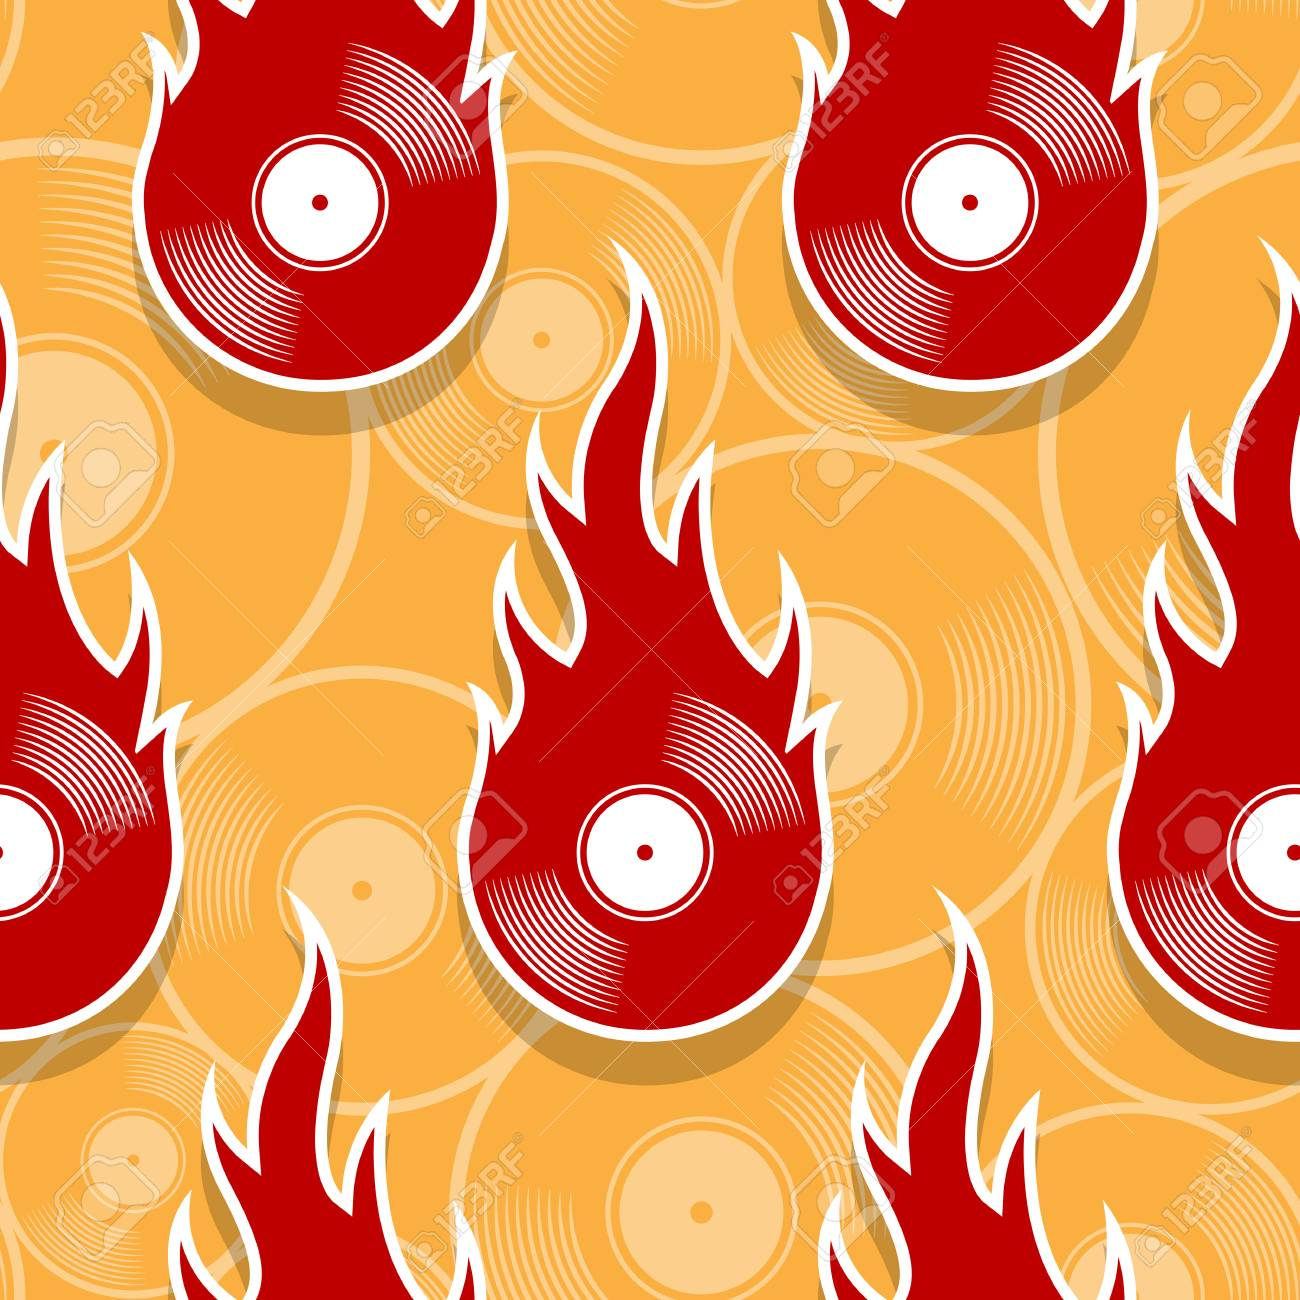 Seamless Pattern With Retro Vintage Vinyl Record Icons And Flames